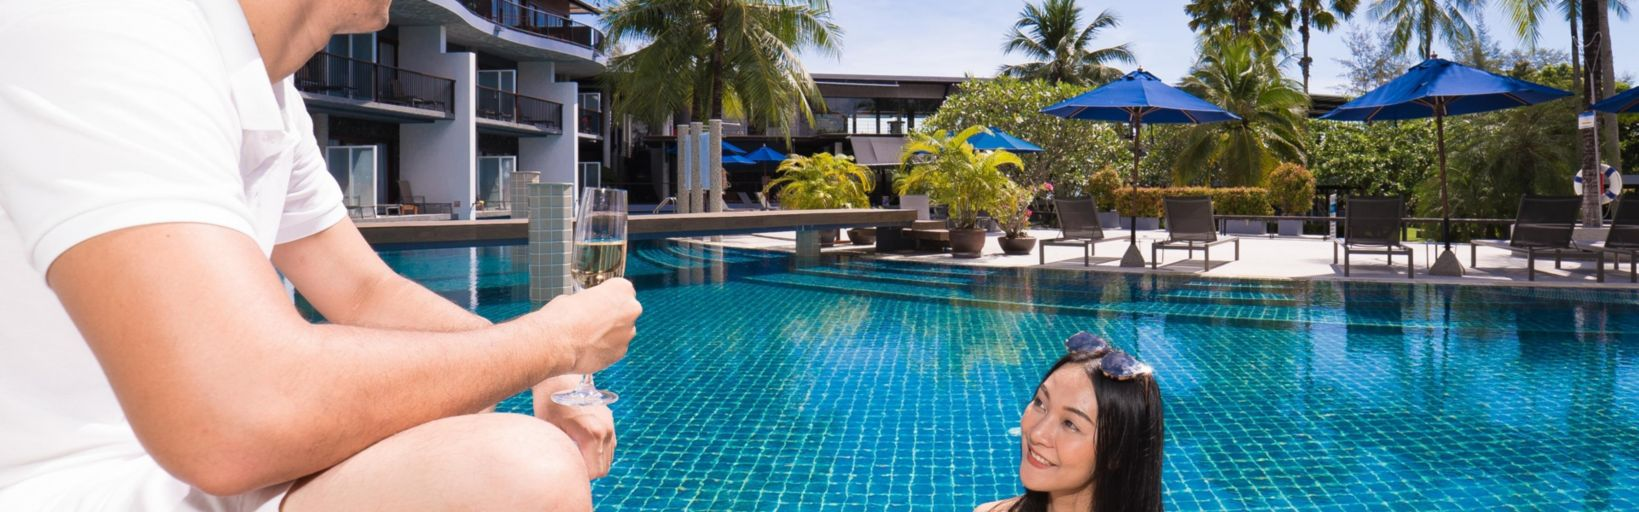 holiday-inn-resort-krabi-5289094599-16×5